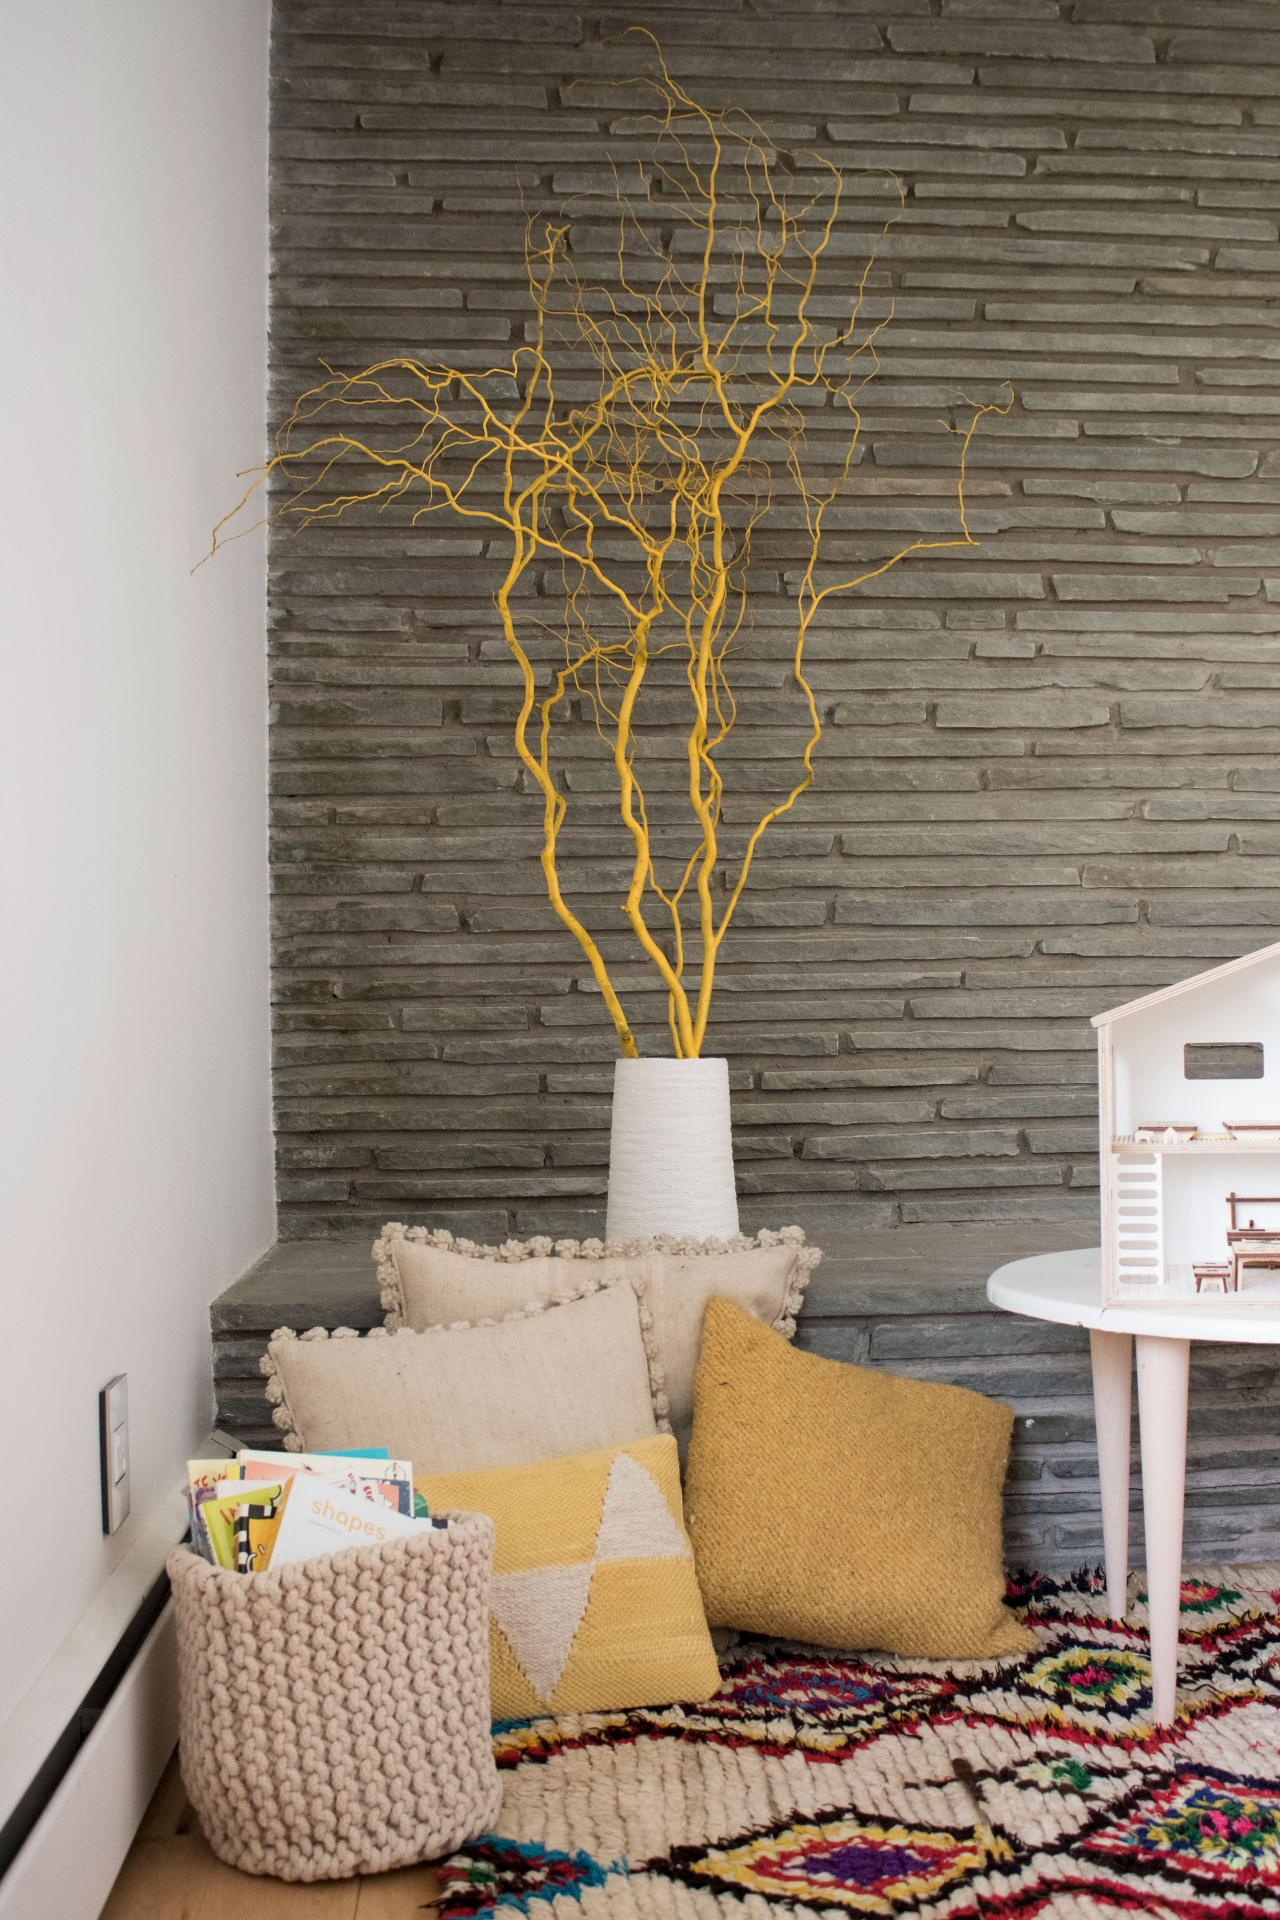 Creative Ideas For Branches As Home Decor Diywork Home Decorators Catalog Best Ideas of Home Decor and Design [homedecoratorscatalog.us]